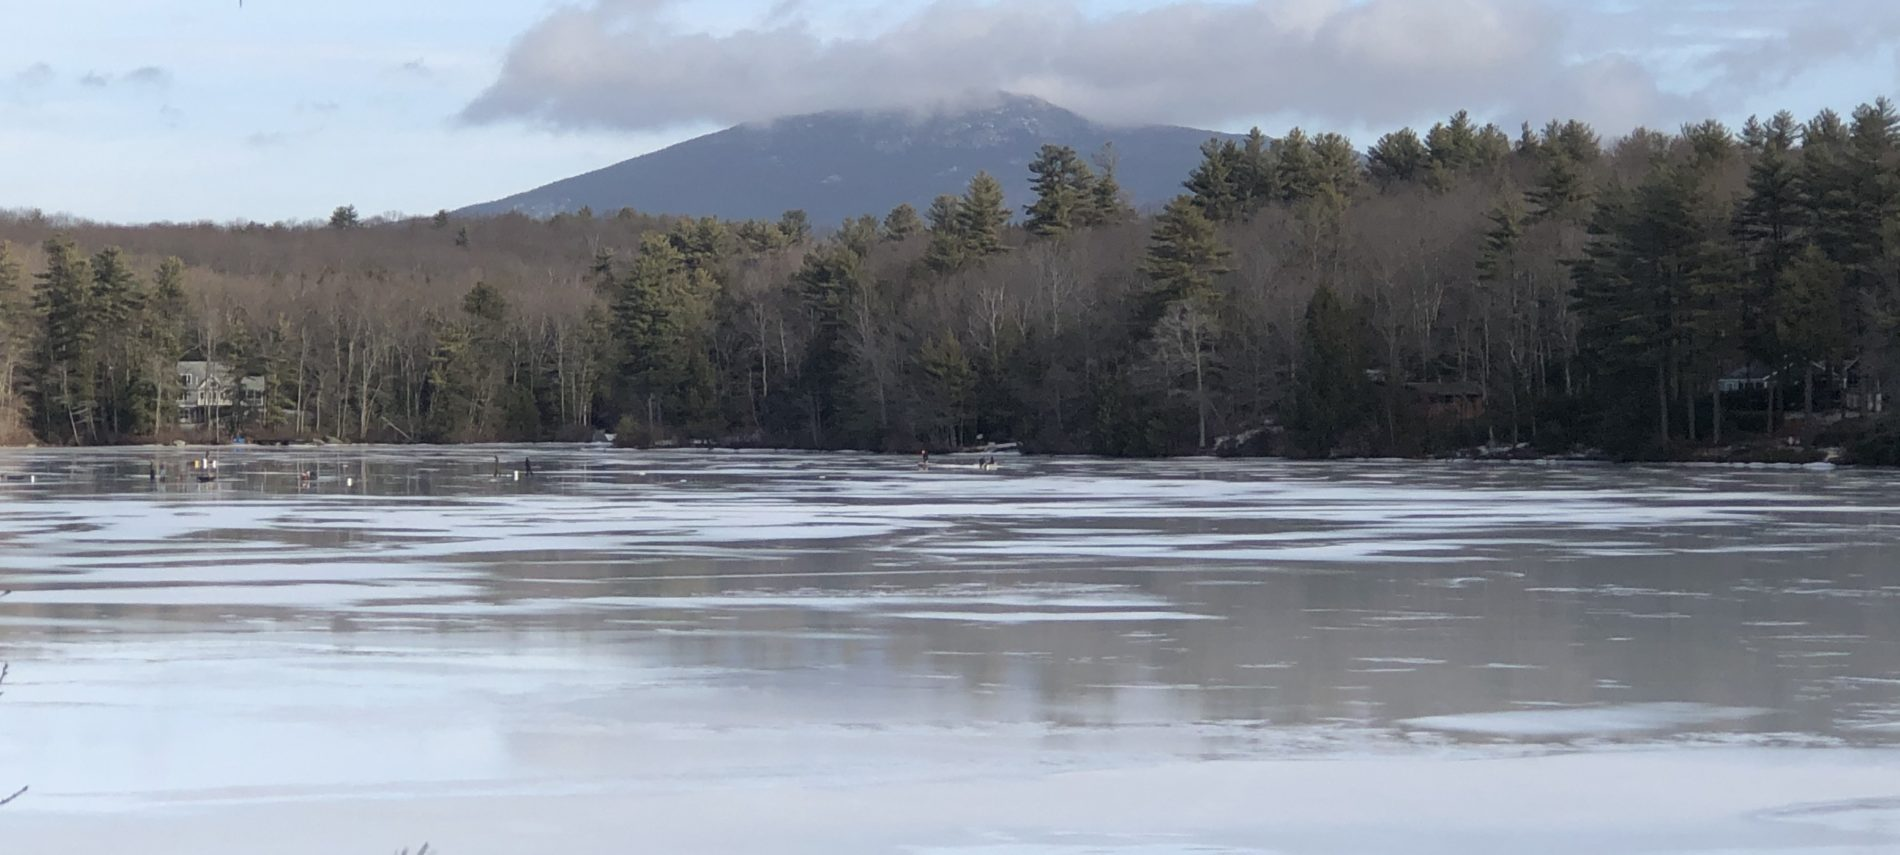 Icy pond with trees and mountain